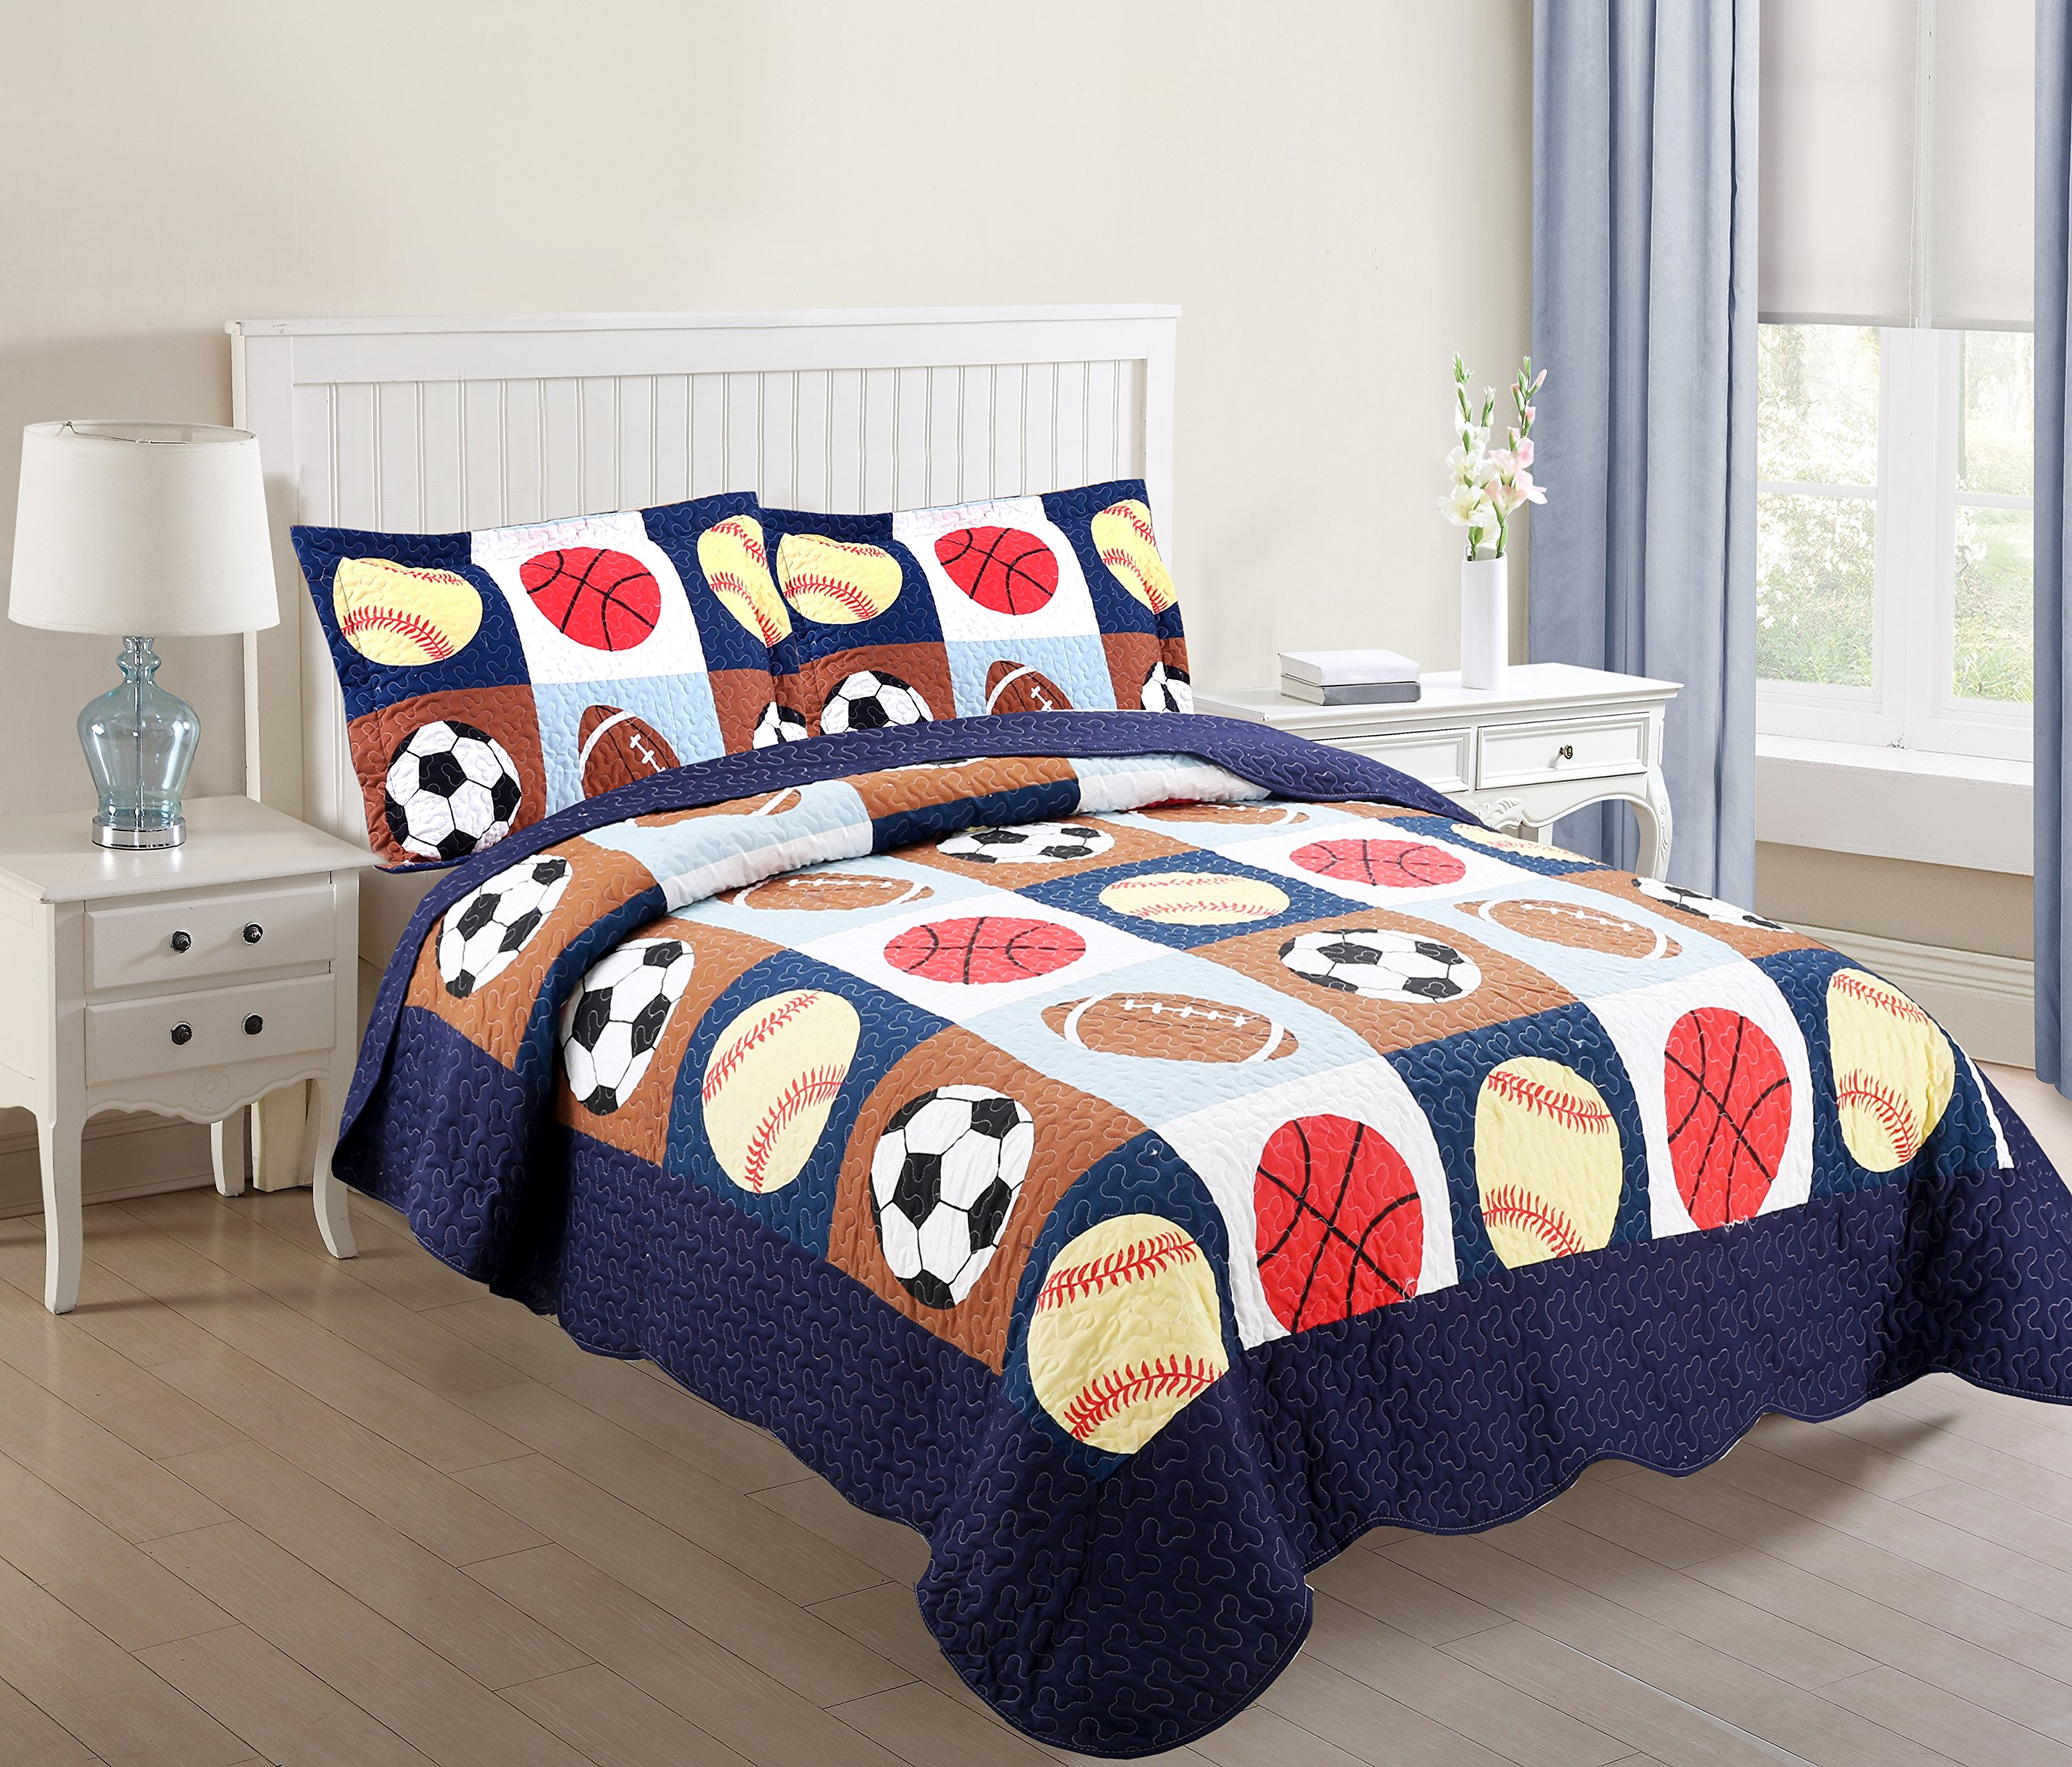 MarCielo 3 Piece Kids Bedspread Quilts Set Throw Blanket for Teens Boys Bed Printed Bedding Coverlet, Full Size, Blue Basketball Football Sports, American Football (Full)